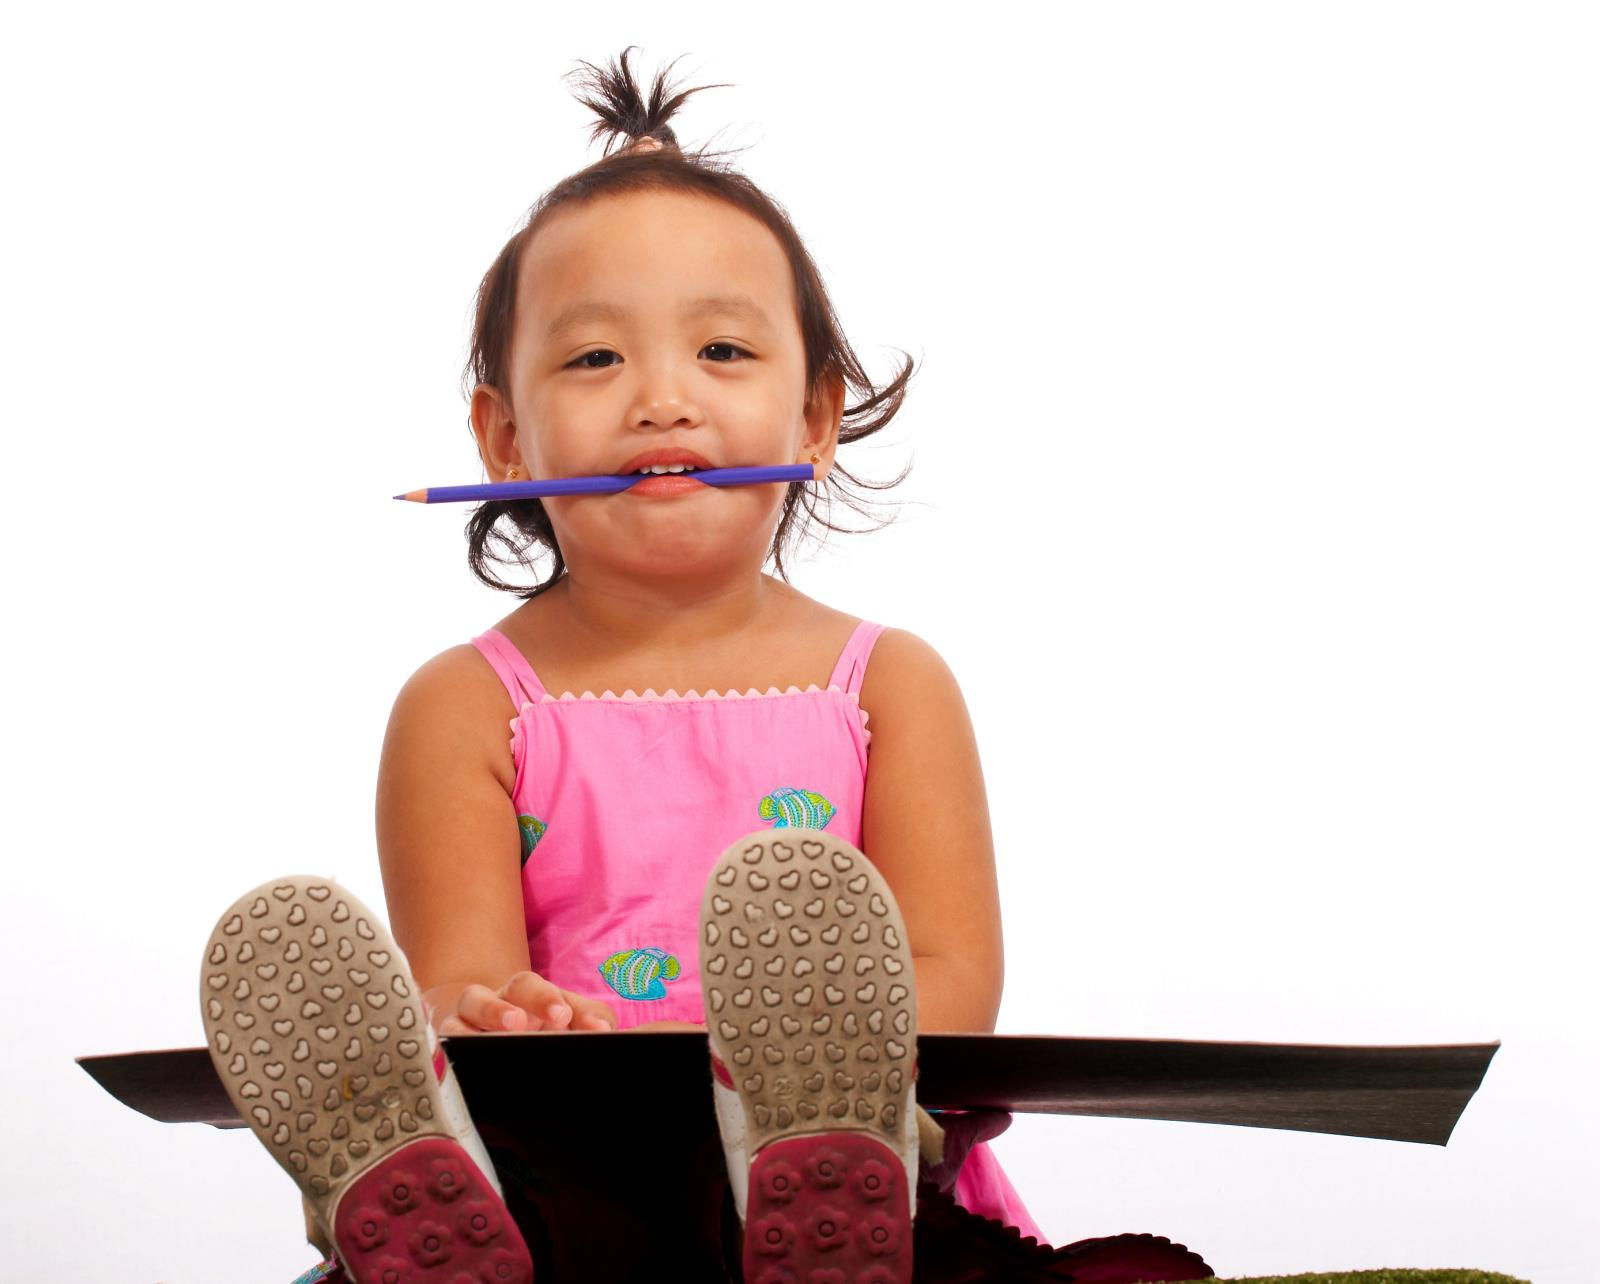 little girl with pencil in mouth graphicstock